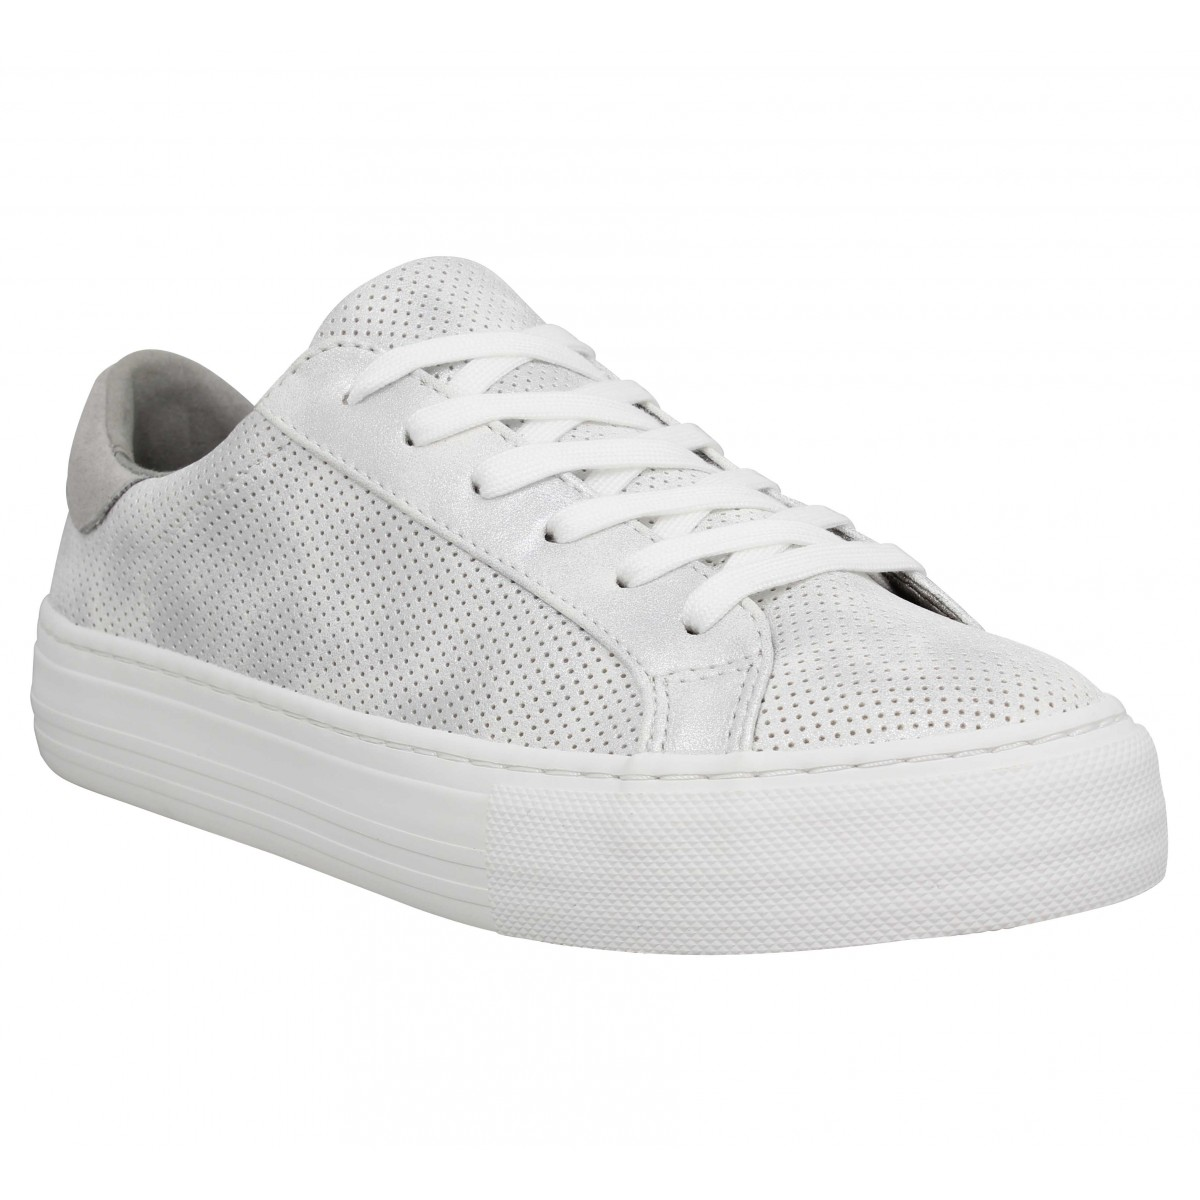 Baskets NO NAME Arcade Sneaker punch glow Femme Argent Blanc